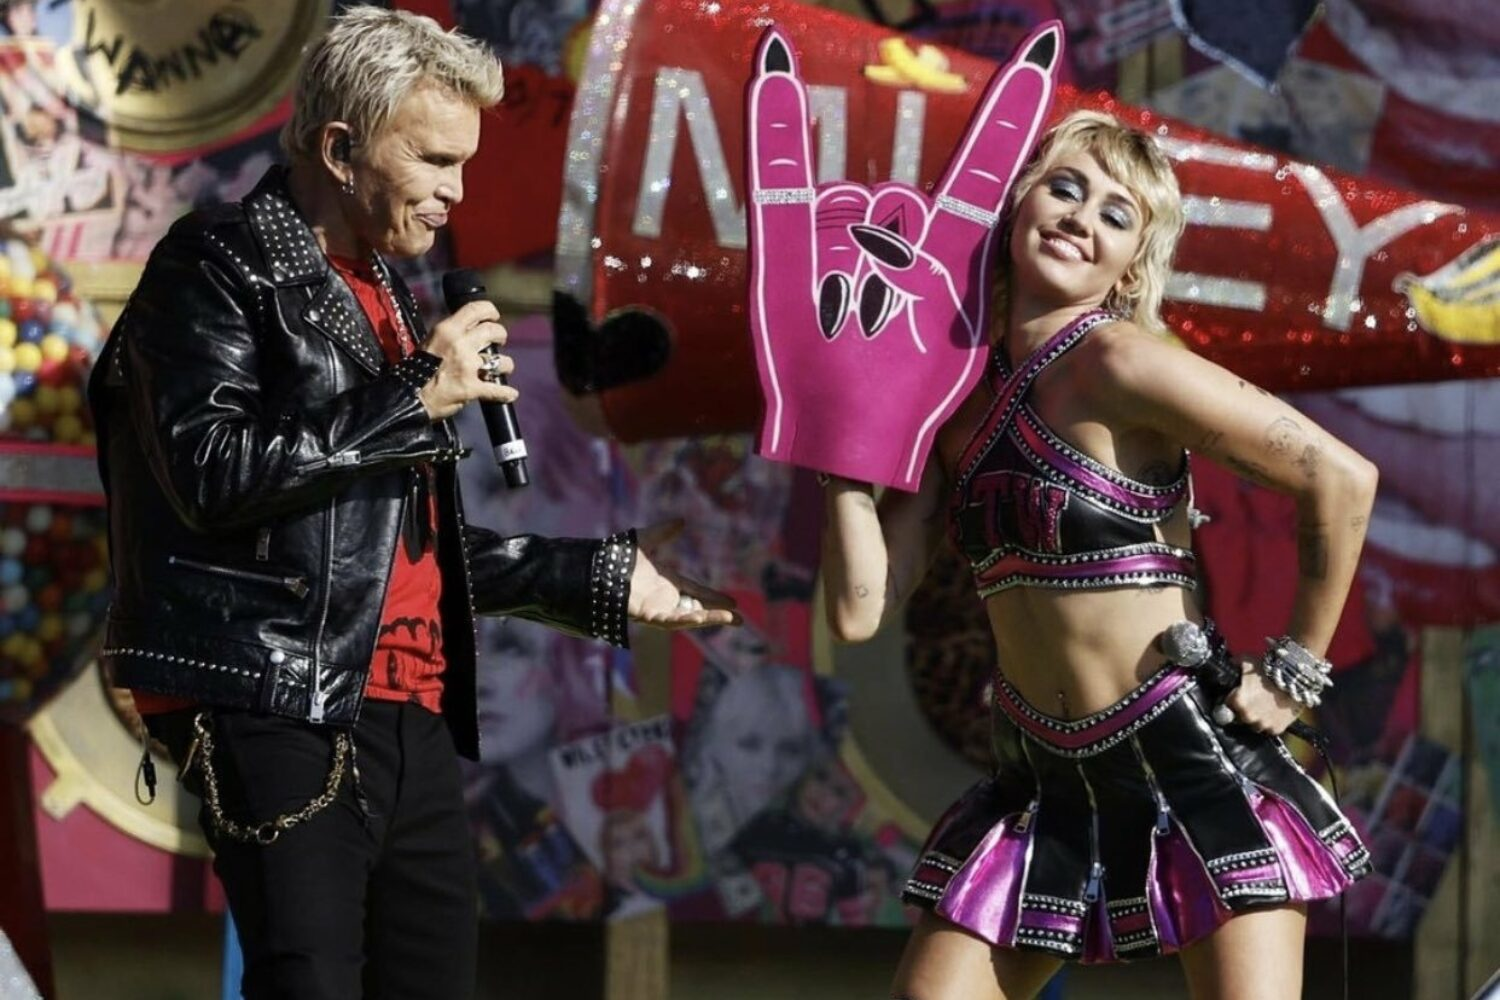 Miley Cyrus performs with Billy Idol and Joan Jett at Super Bowl Tailgate